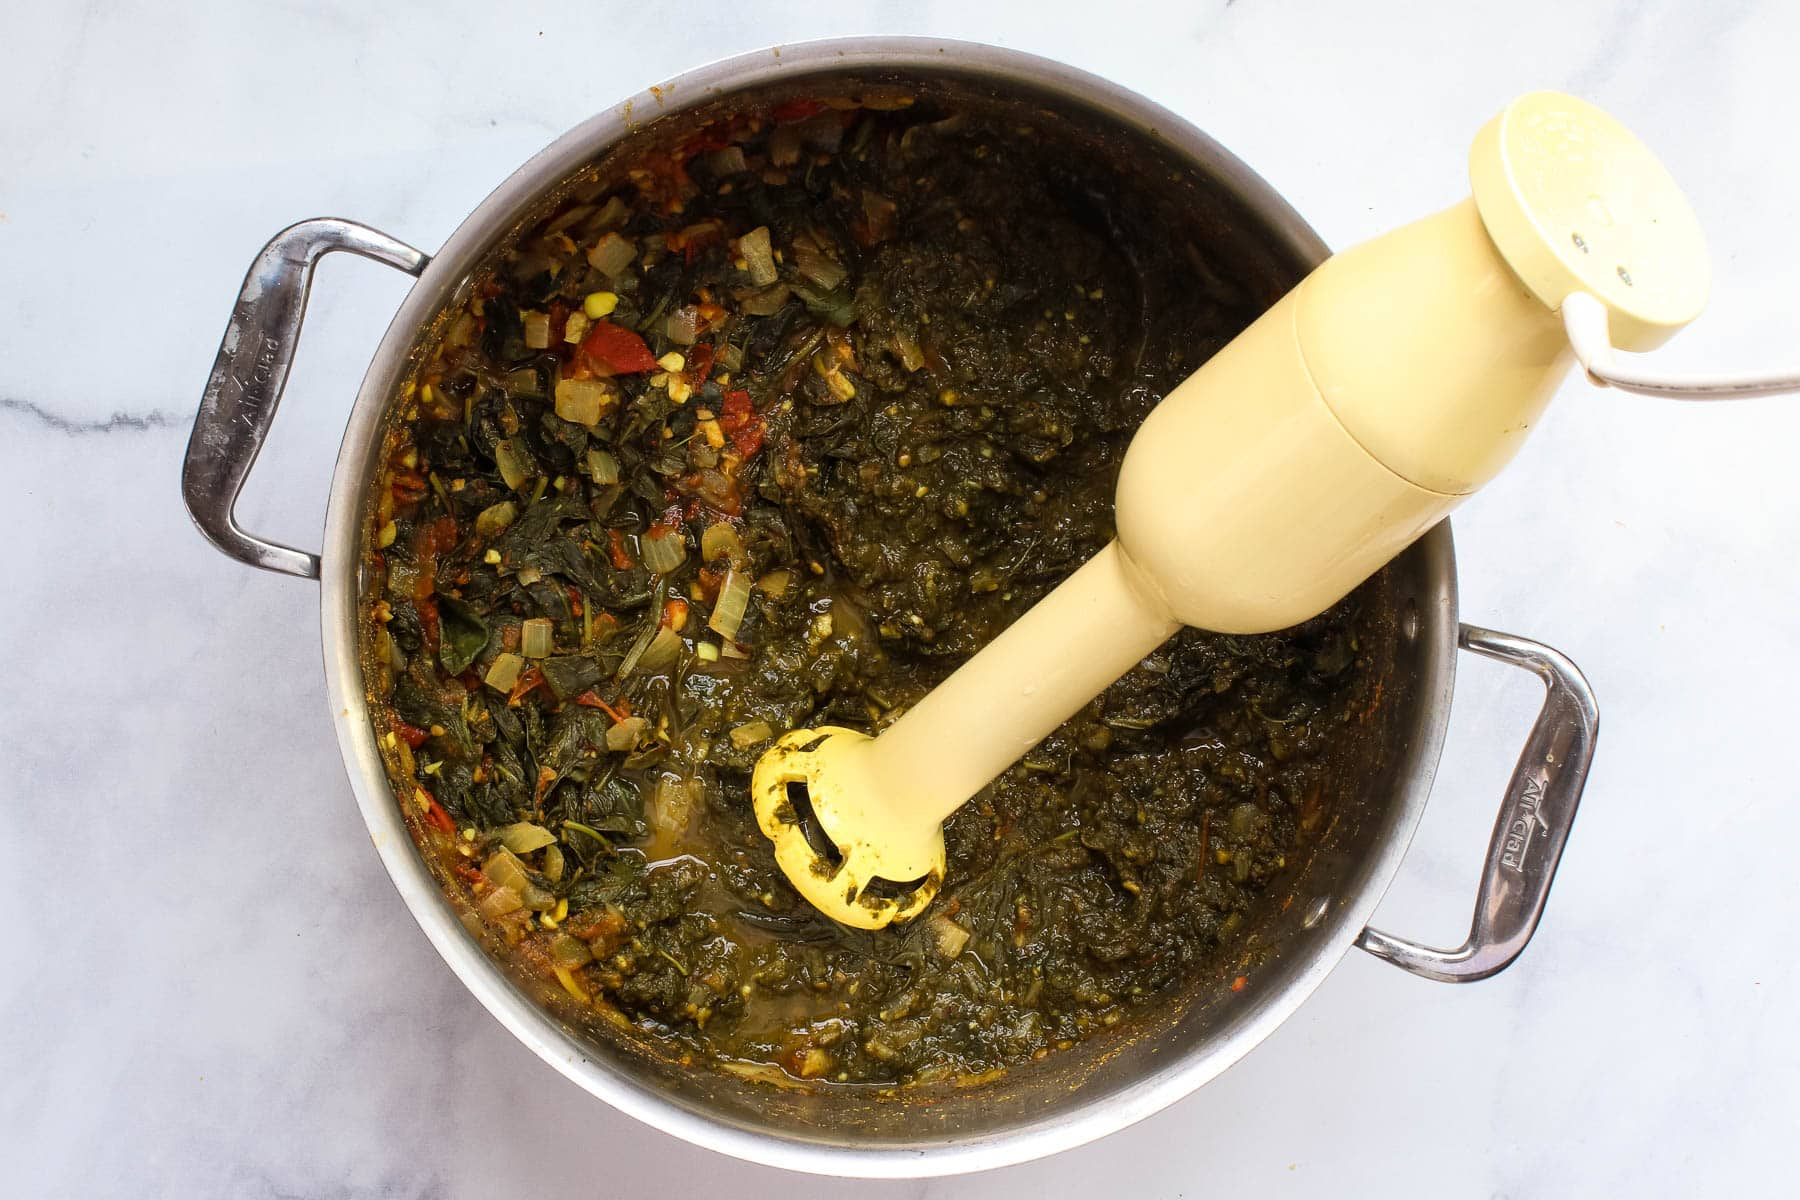 Blending spinach and other ingredients with an immersion blender.